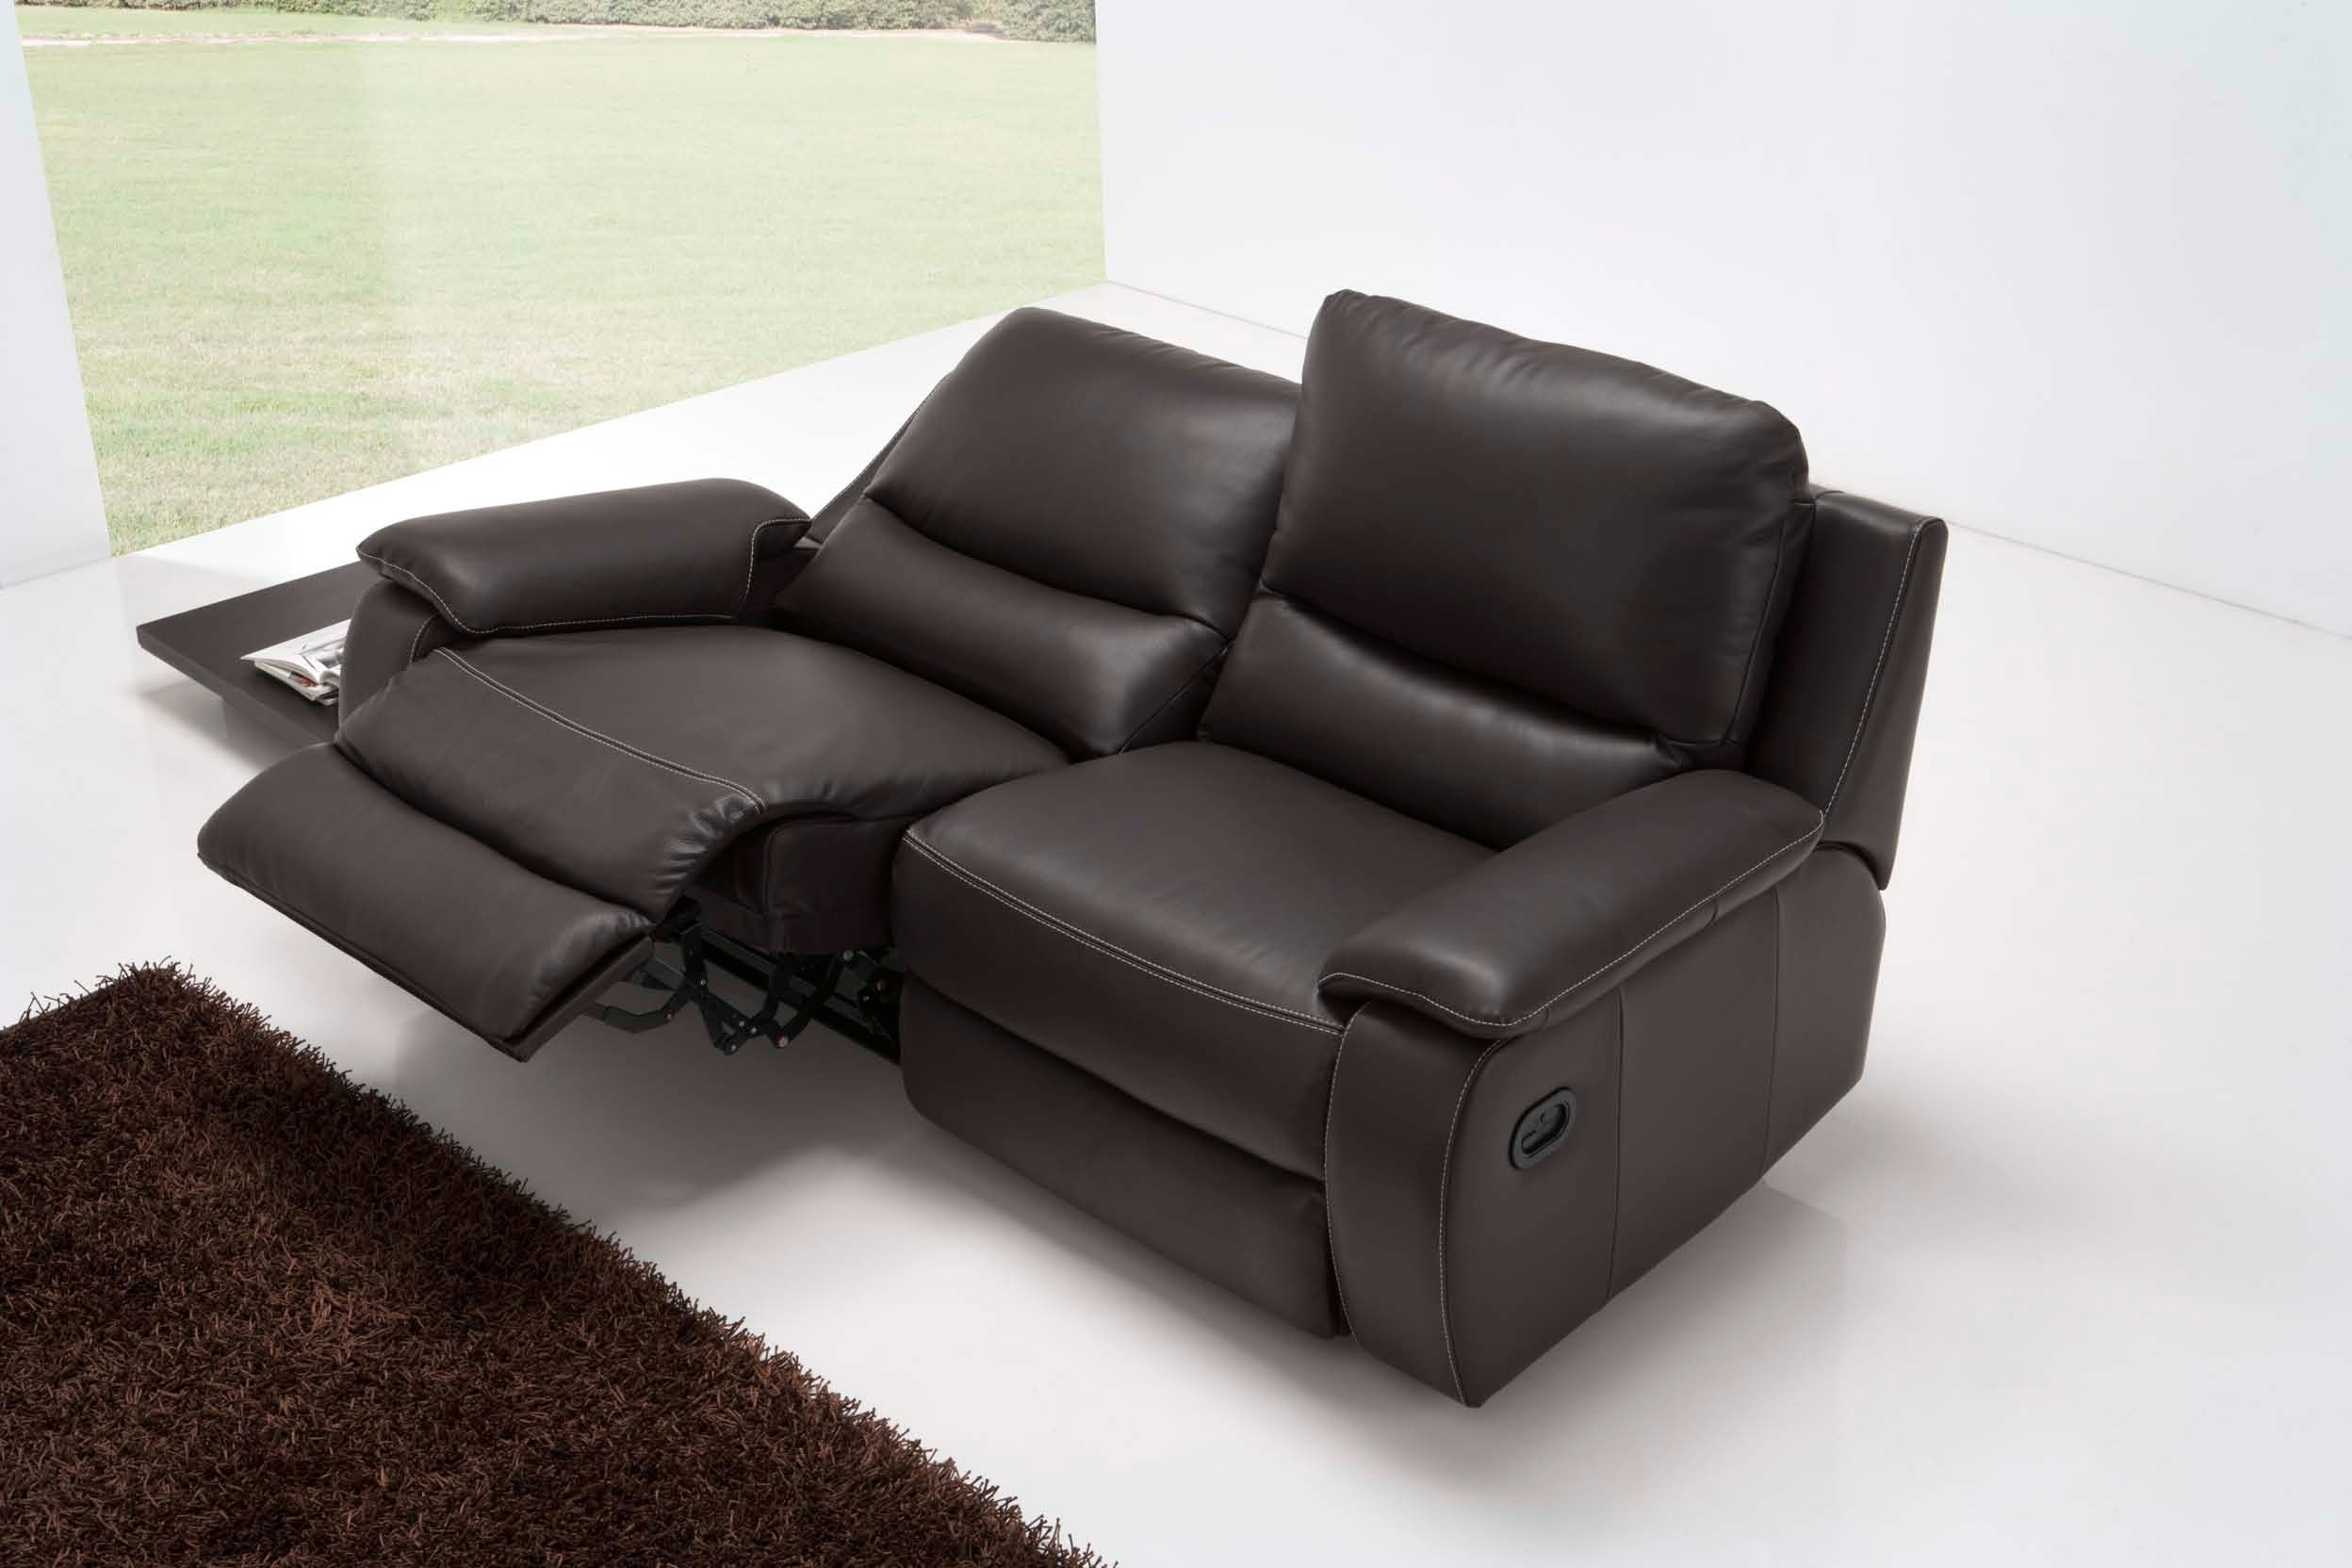 Fashionable 2 Seat Sectional Sofas Regarding Sofa Blacker Sofas With Recliners Sectional Couch Corner Matching (View 11 of 20)